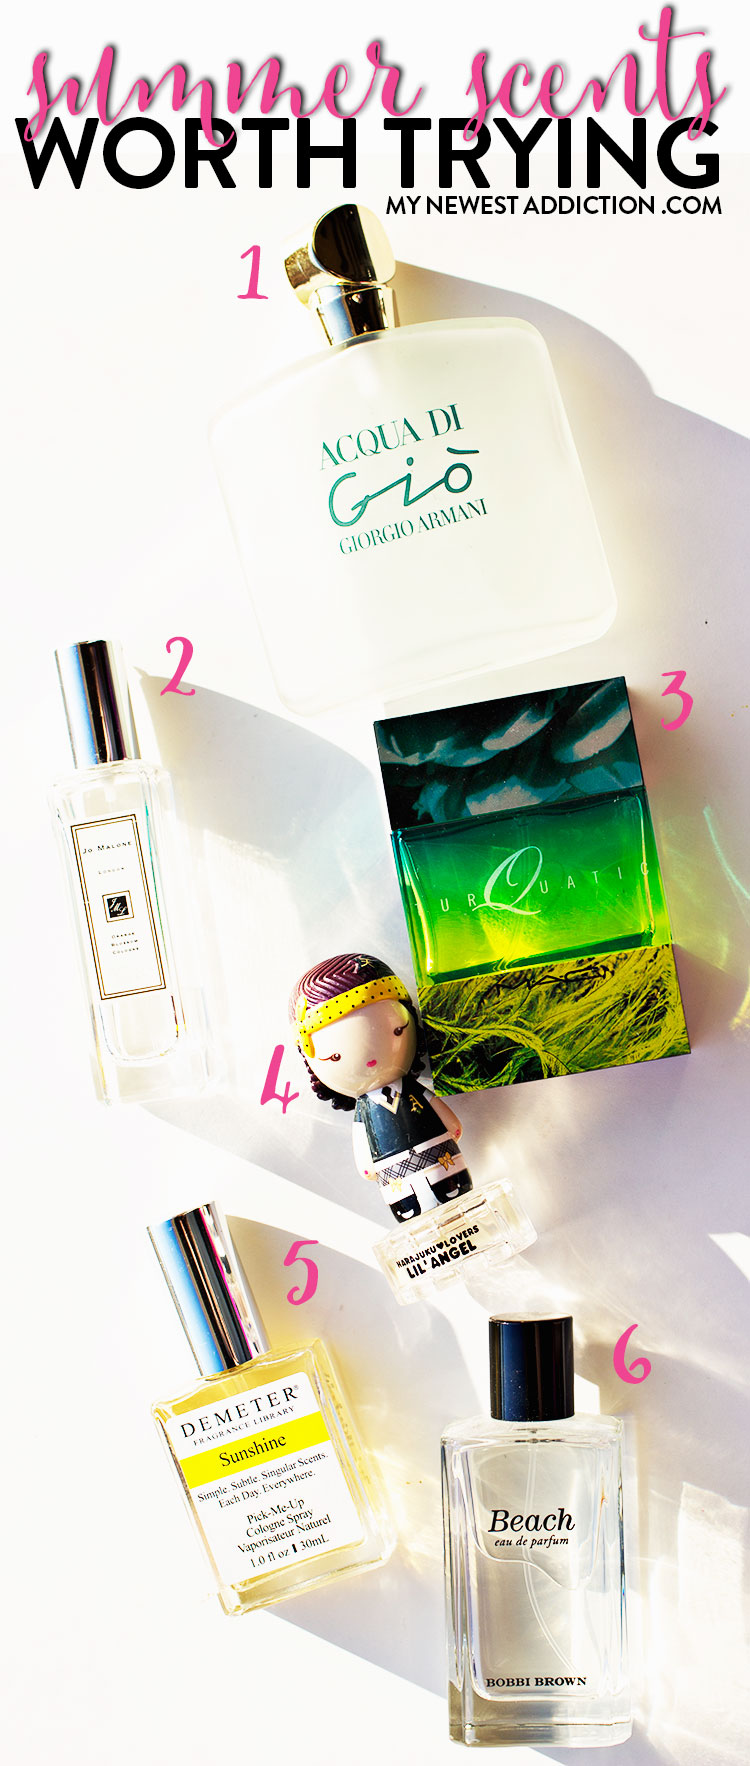 Summer Scents Worth Trying